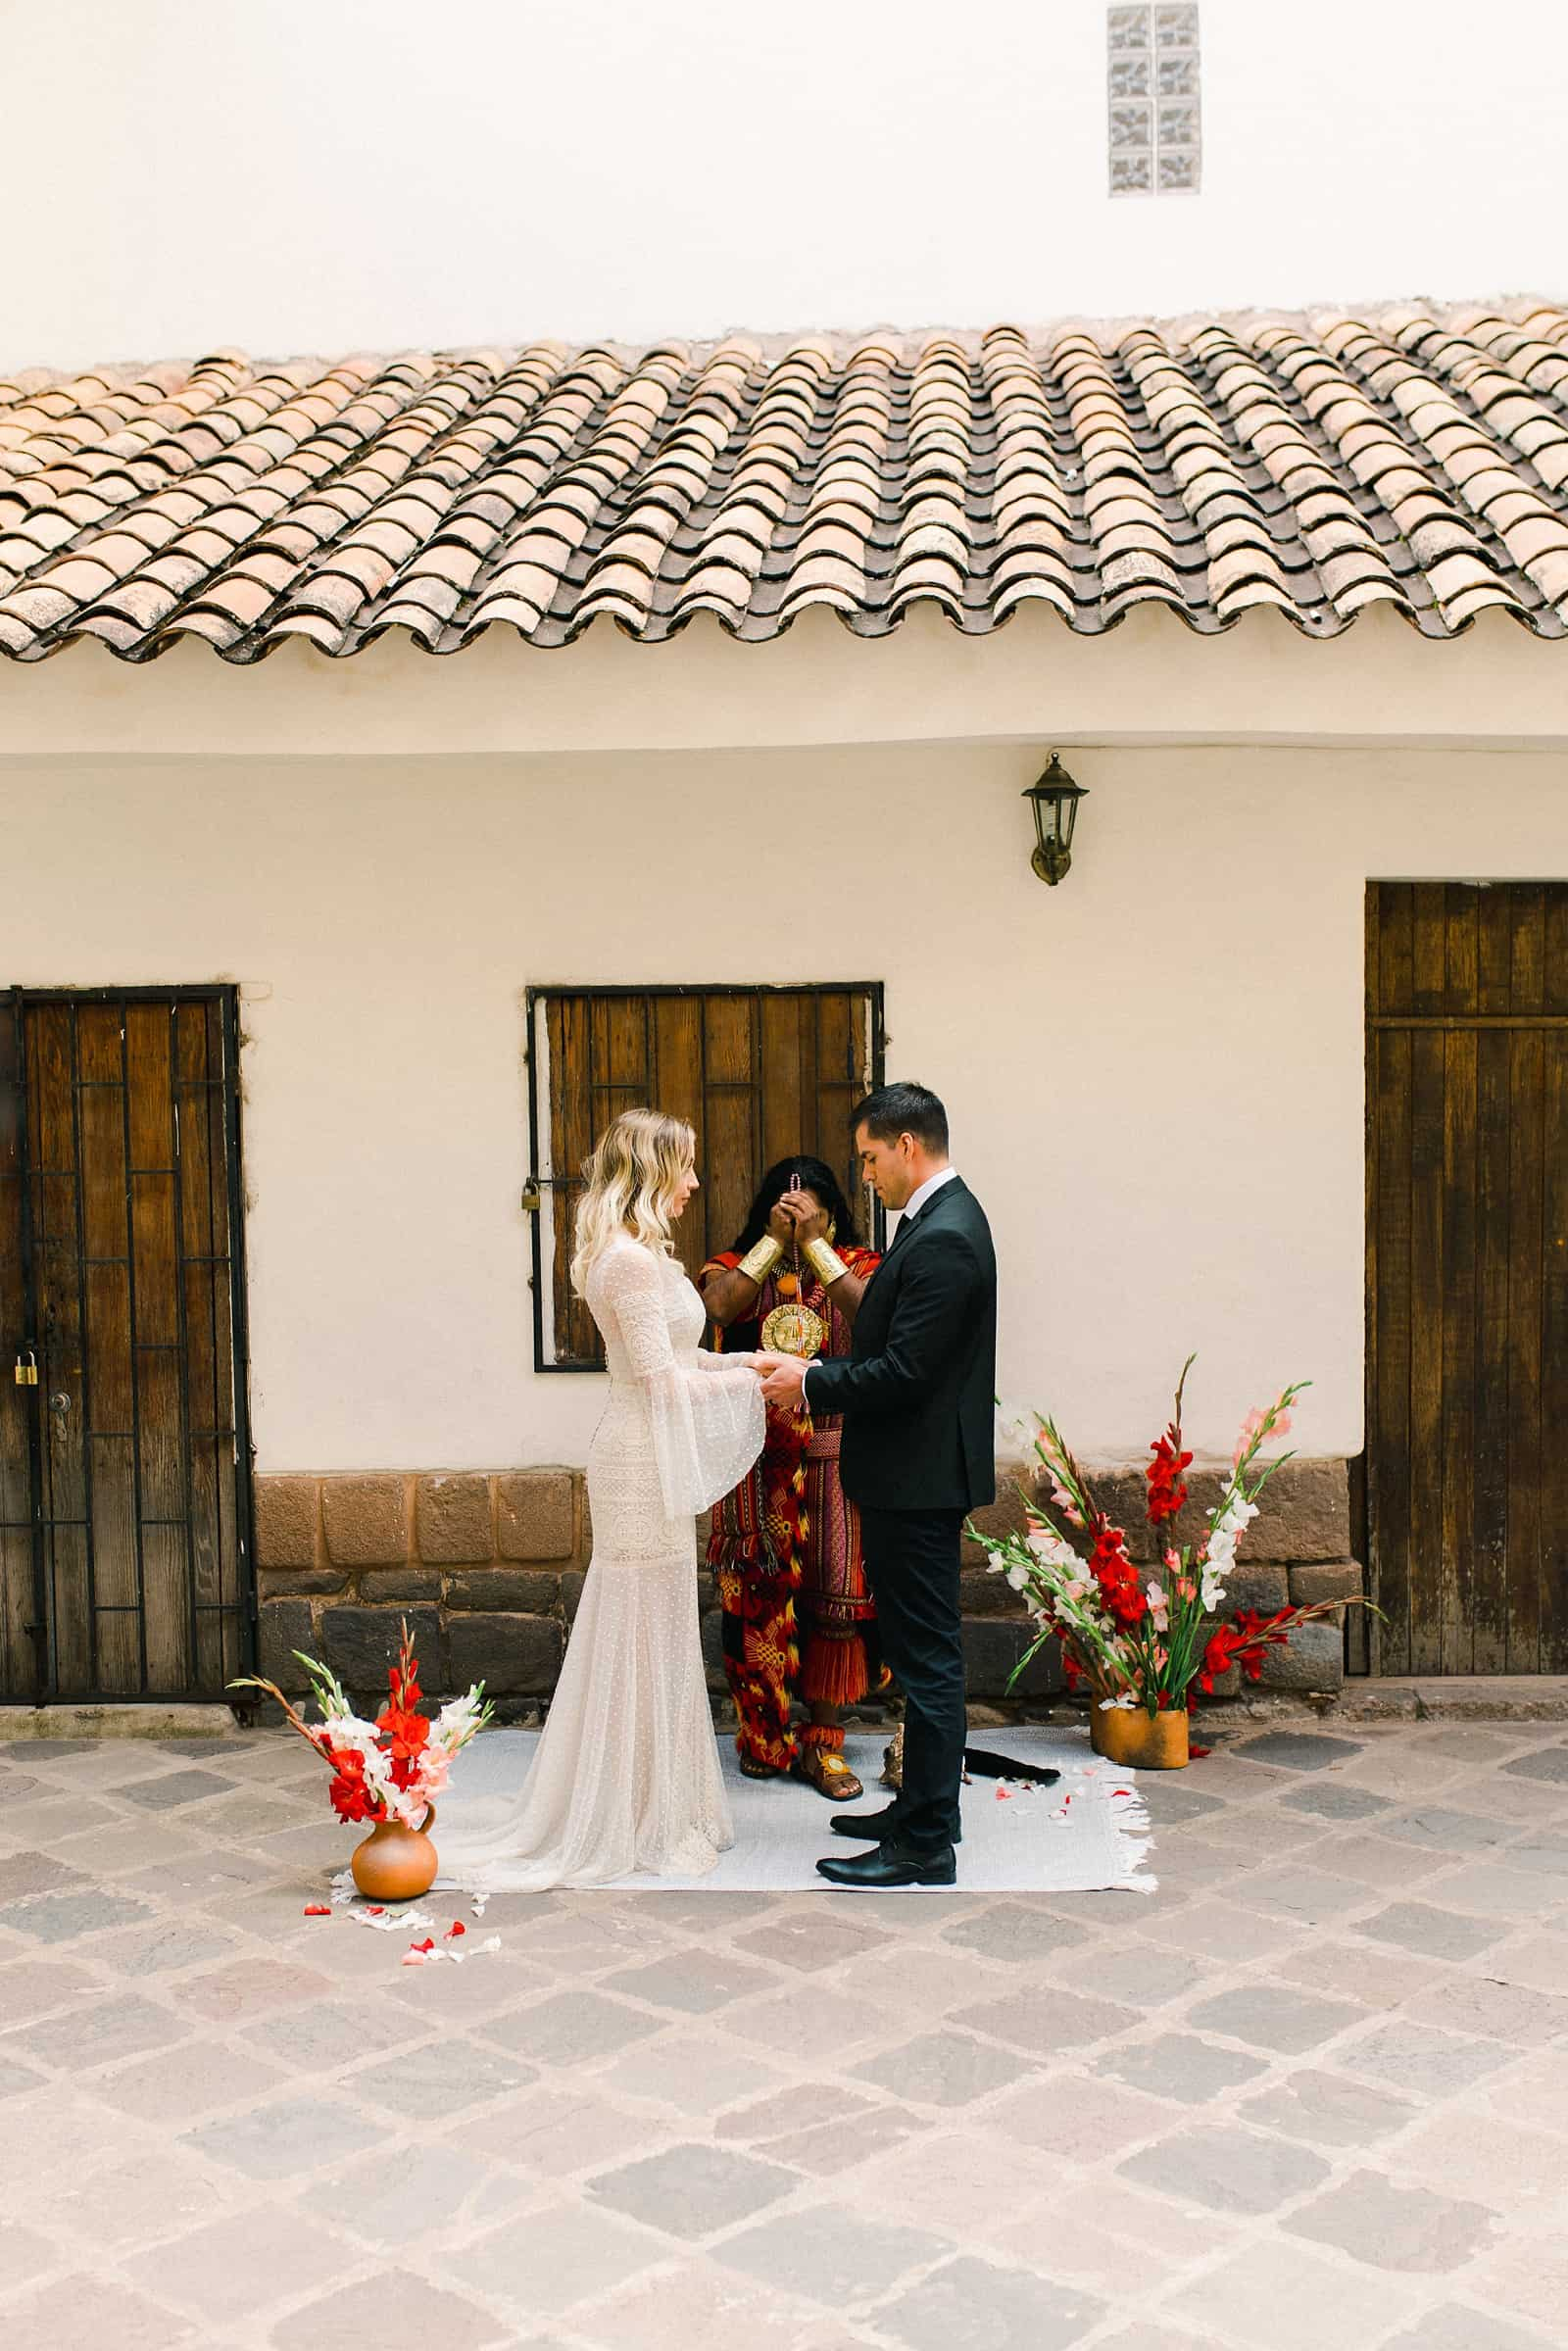 Cusco Peru Destination Wedding, travel wedding photography, Plaza de Armas ceremony with shaman, red flowers Spanish boho wedding